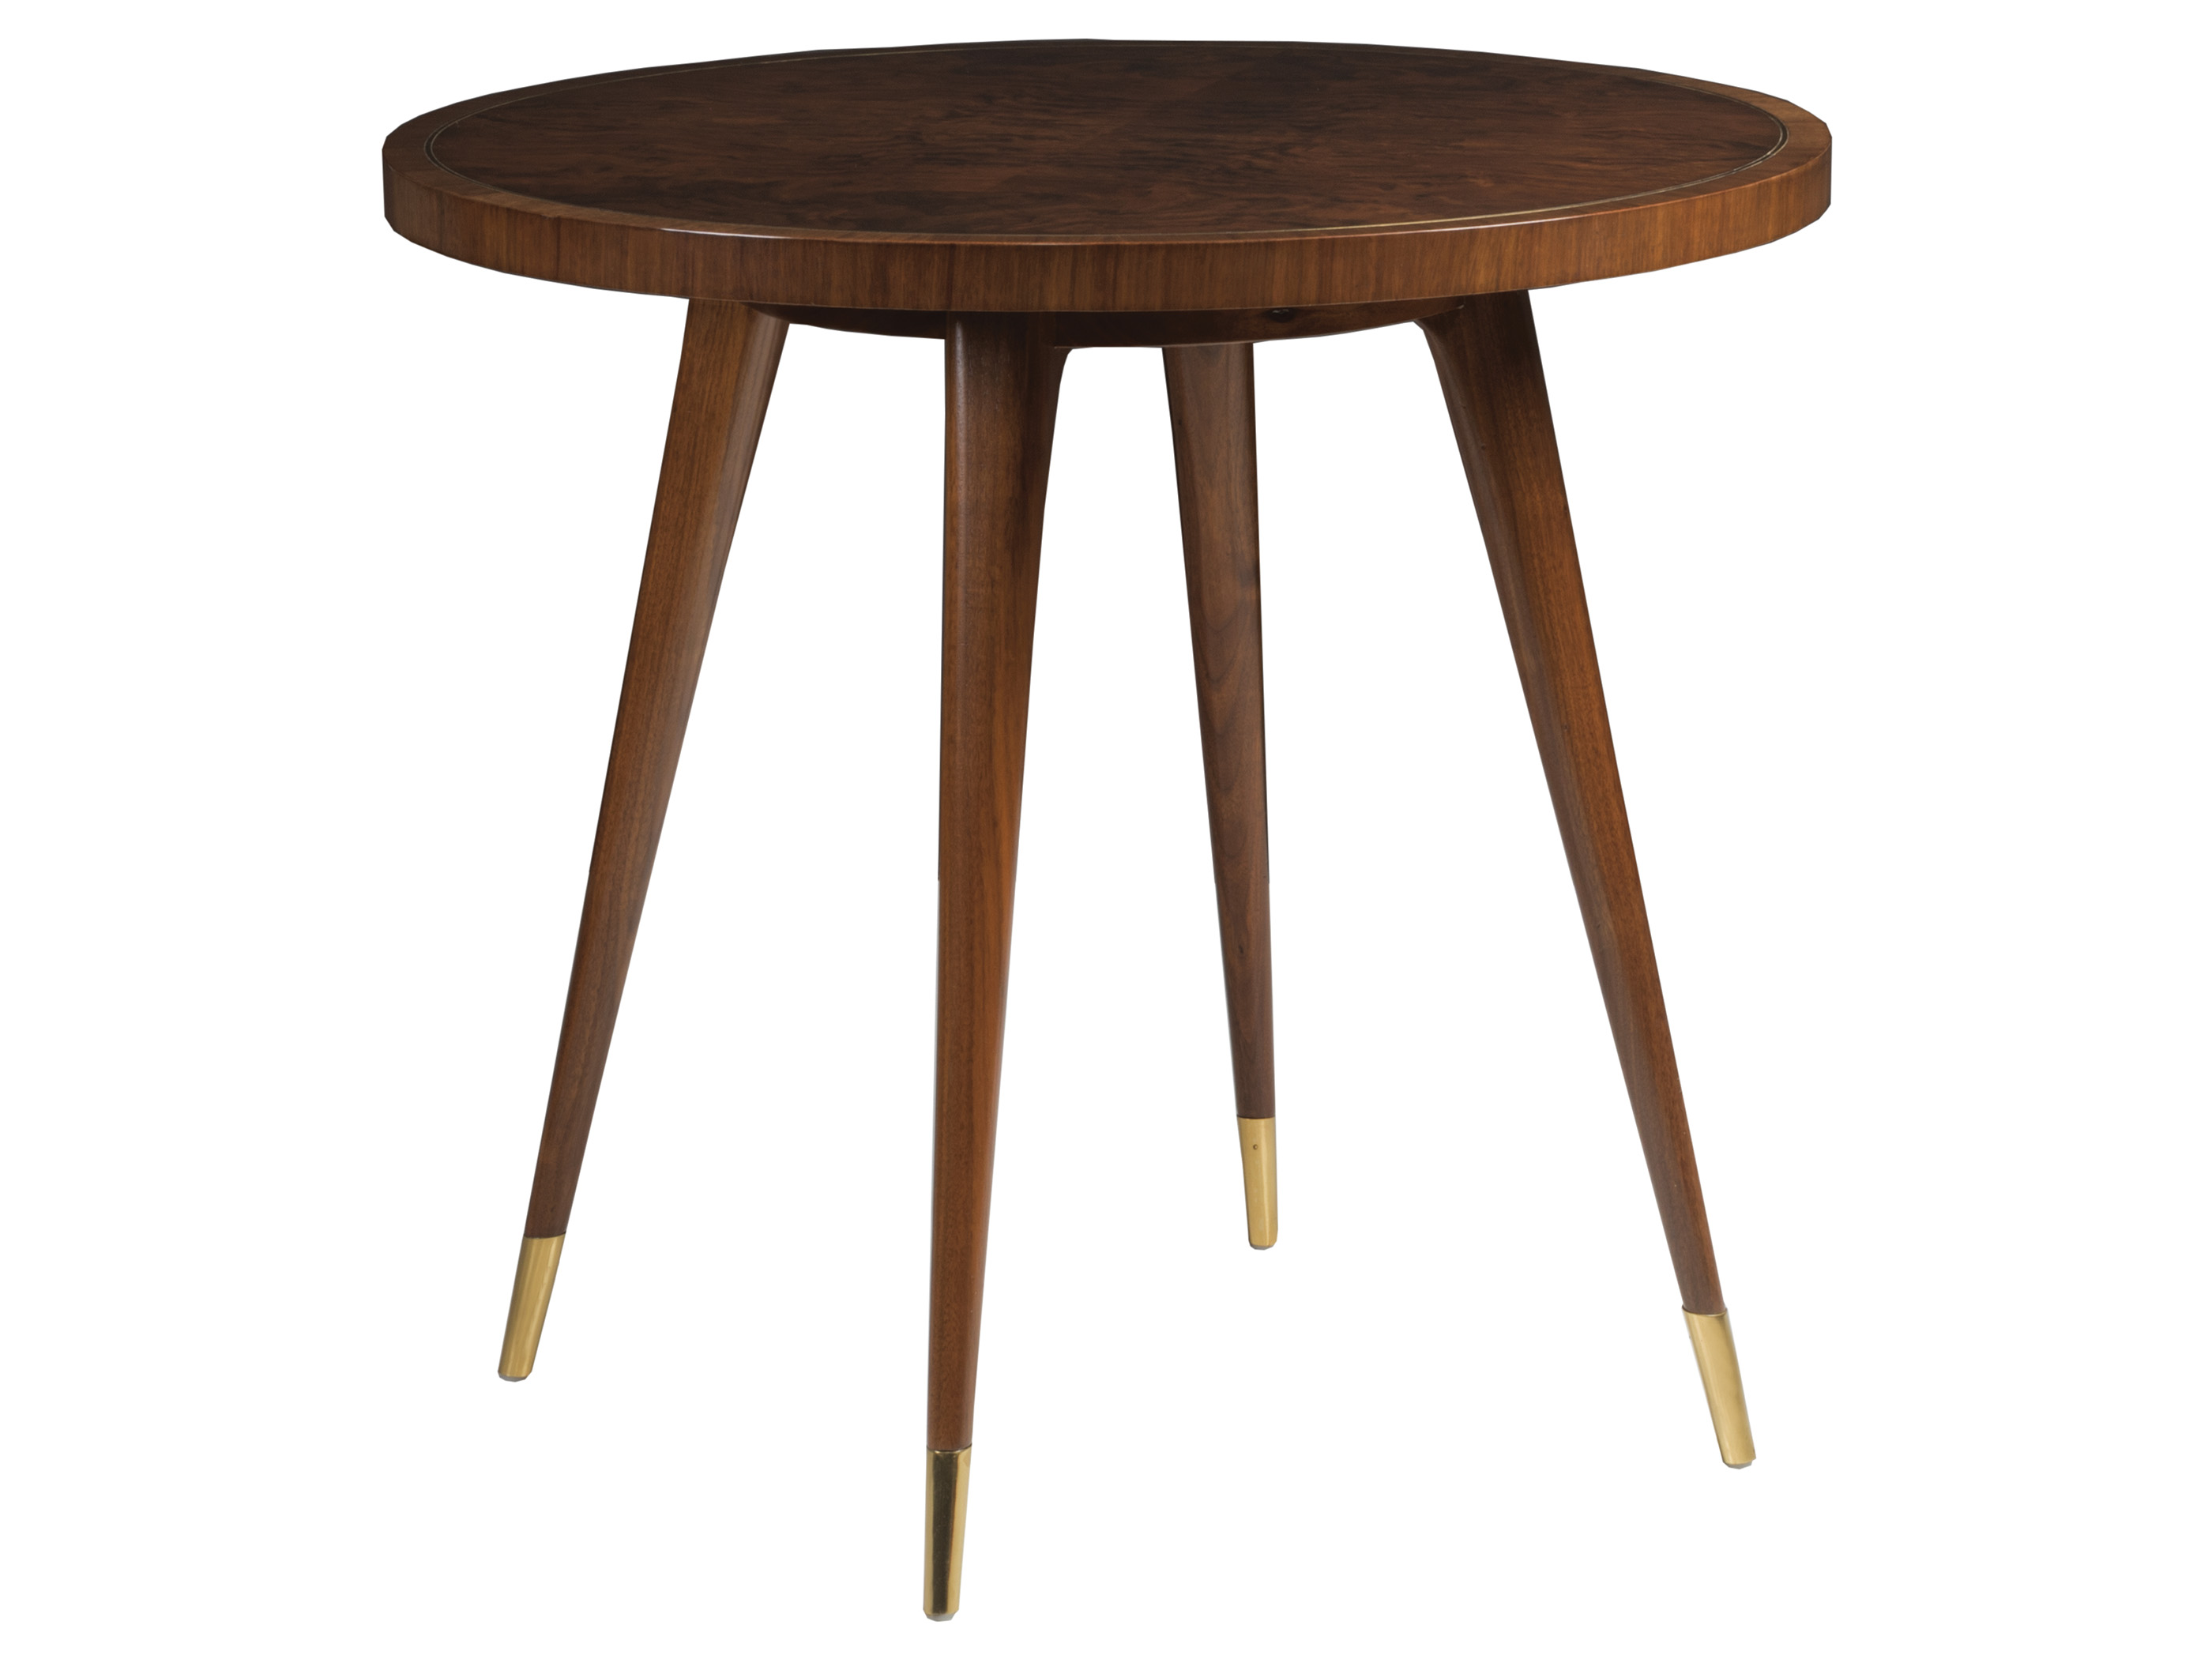 Marlowe Round End Table by Artistica at Sprintz Furniture